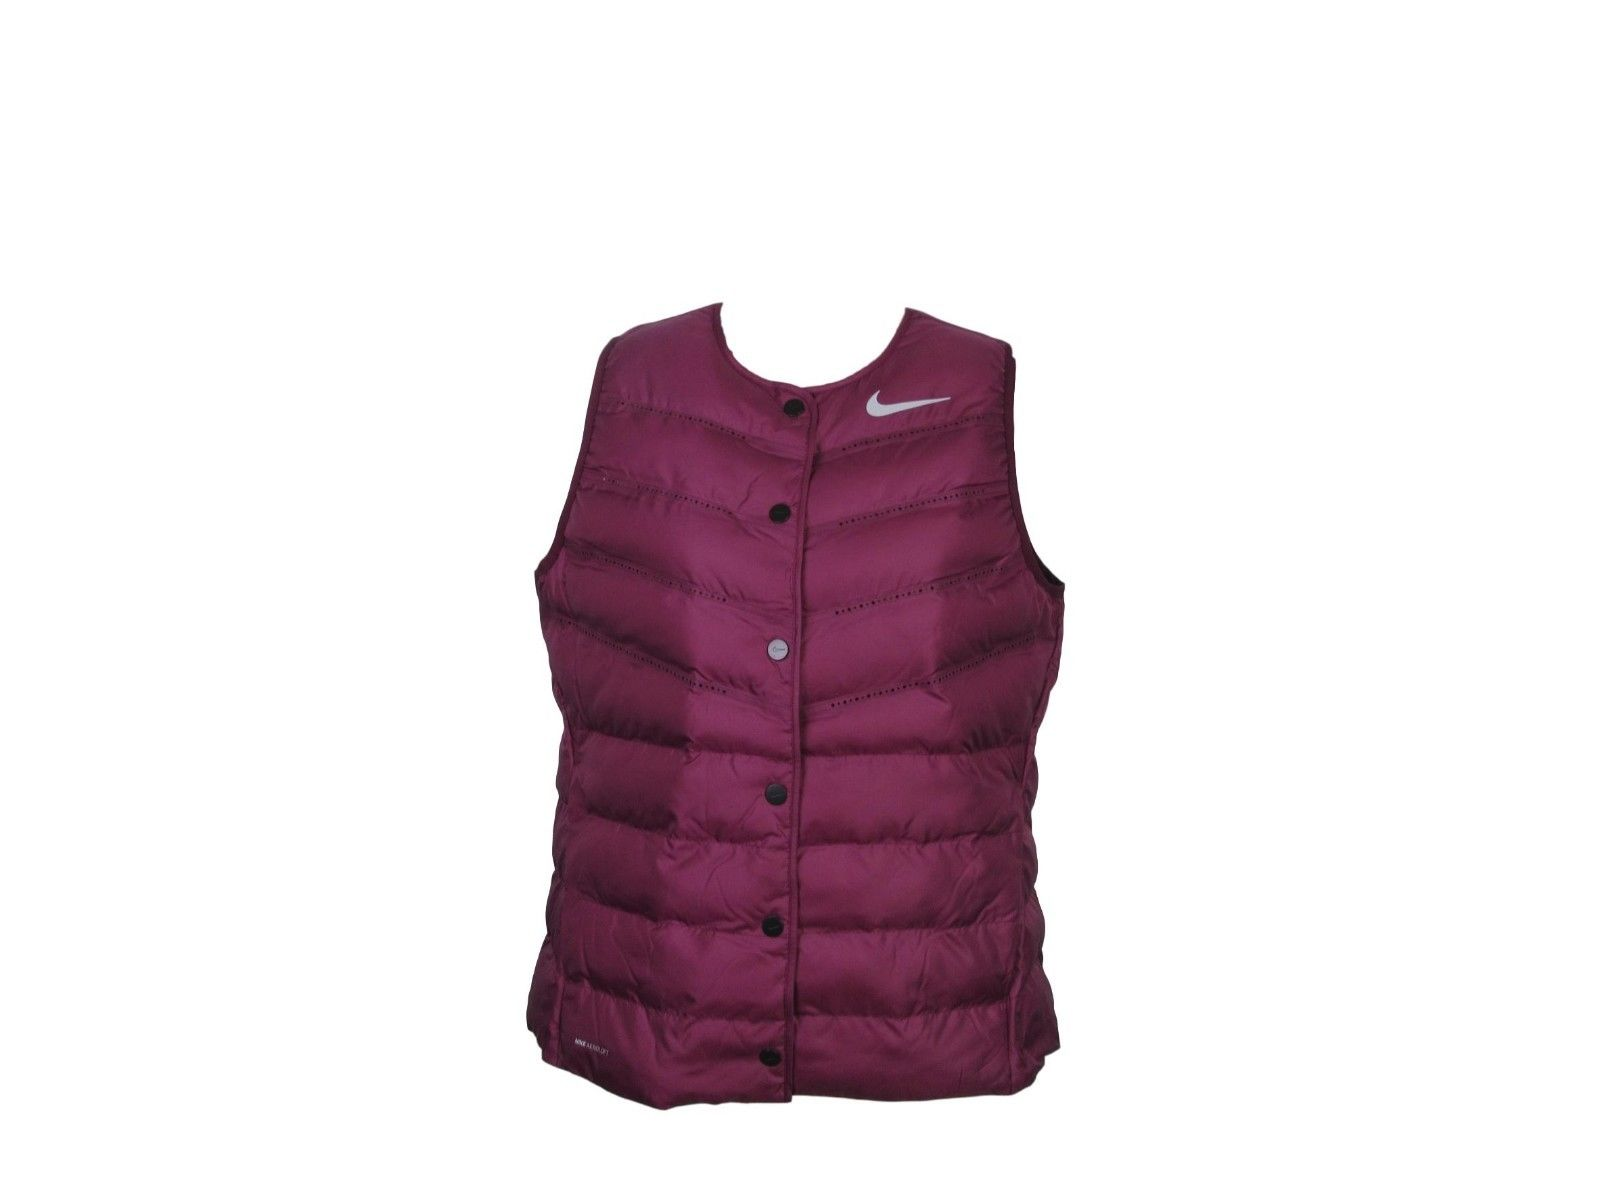 a1ed2a35a619 Nike Aeroloft Womens Size Large Vented Vest Purple Training Golf ...